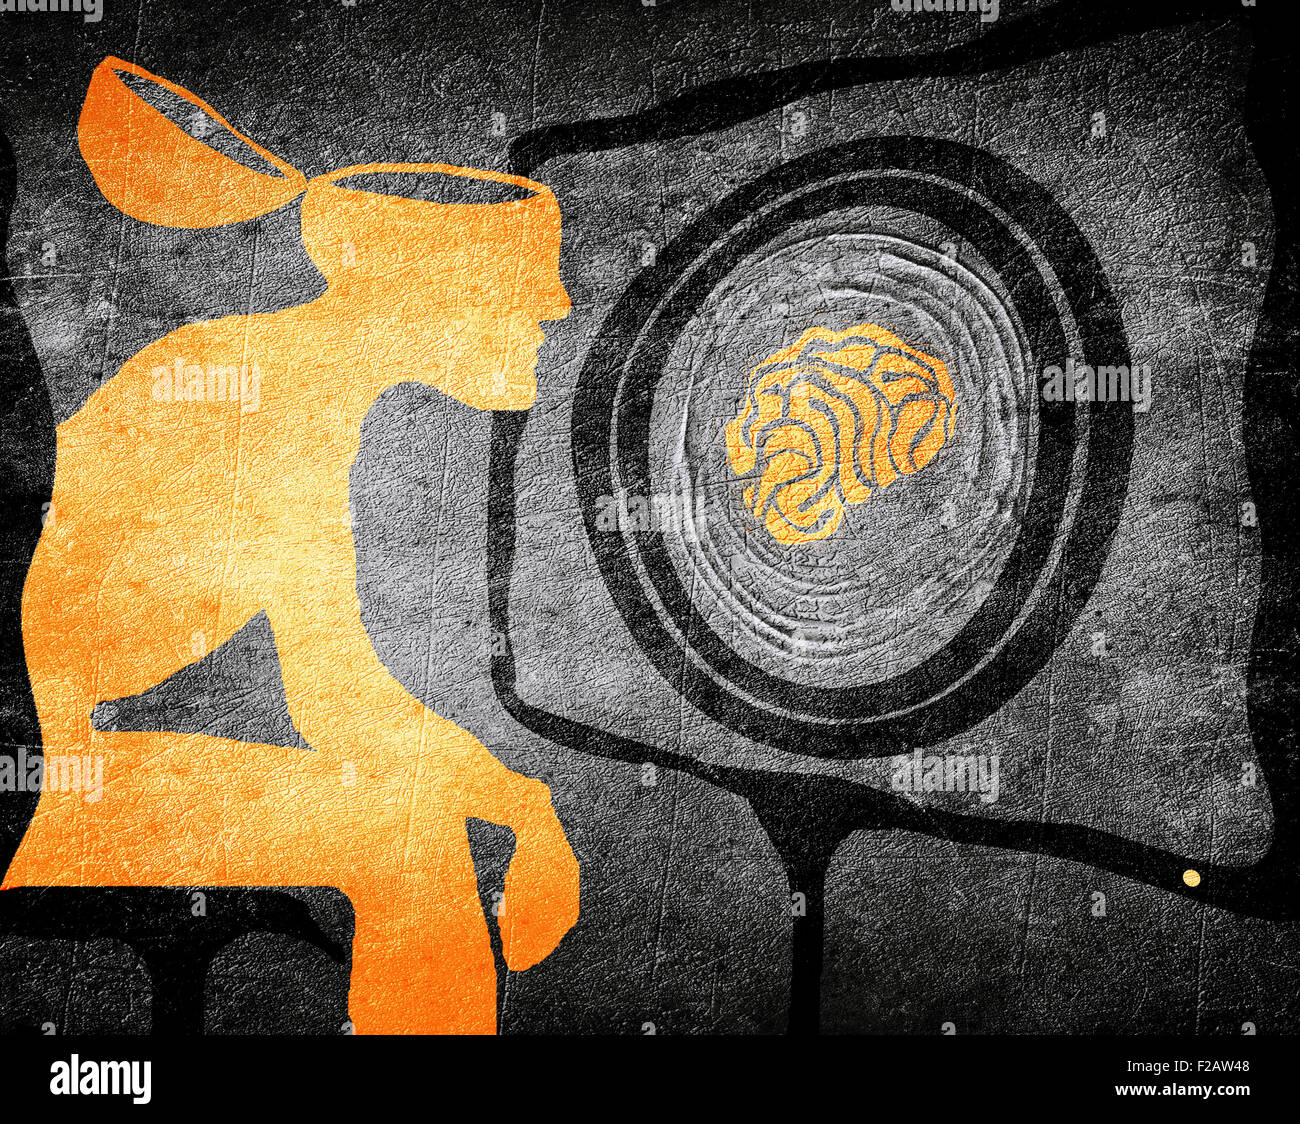 man looking Television washing brain illustration concept - Stock Image